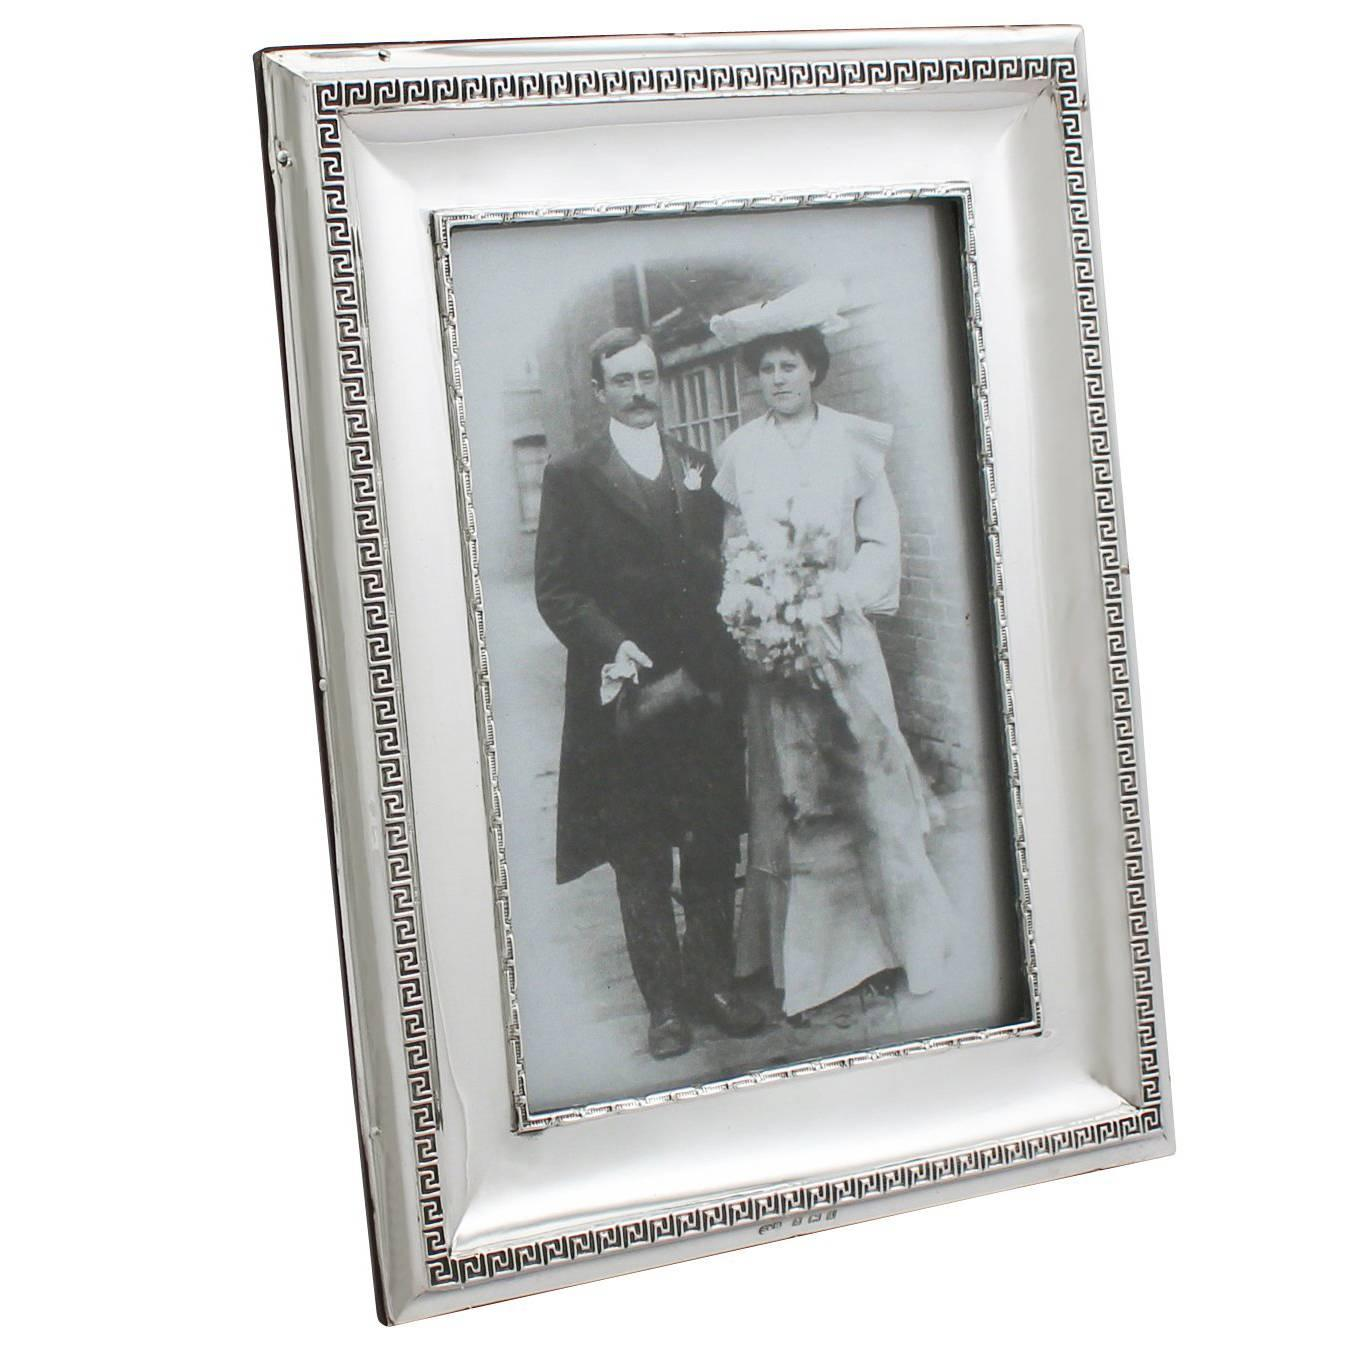 1908 Antique Sterling Silver Photograph Frame at 1stdibs